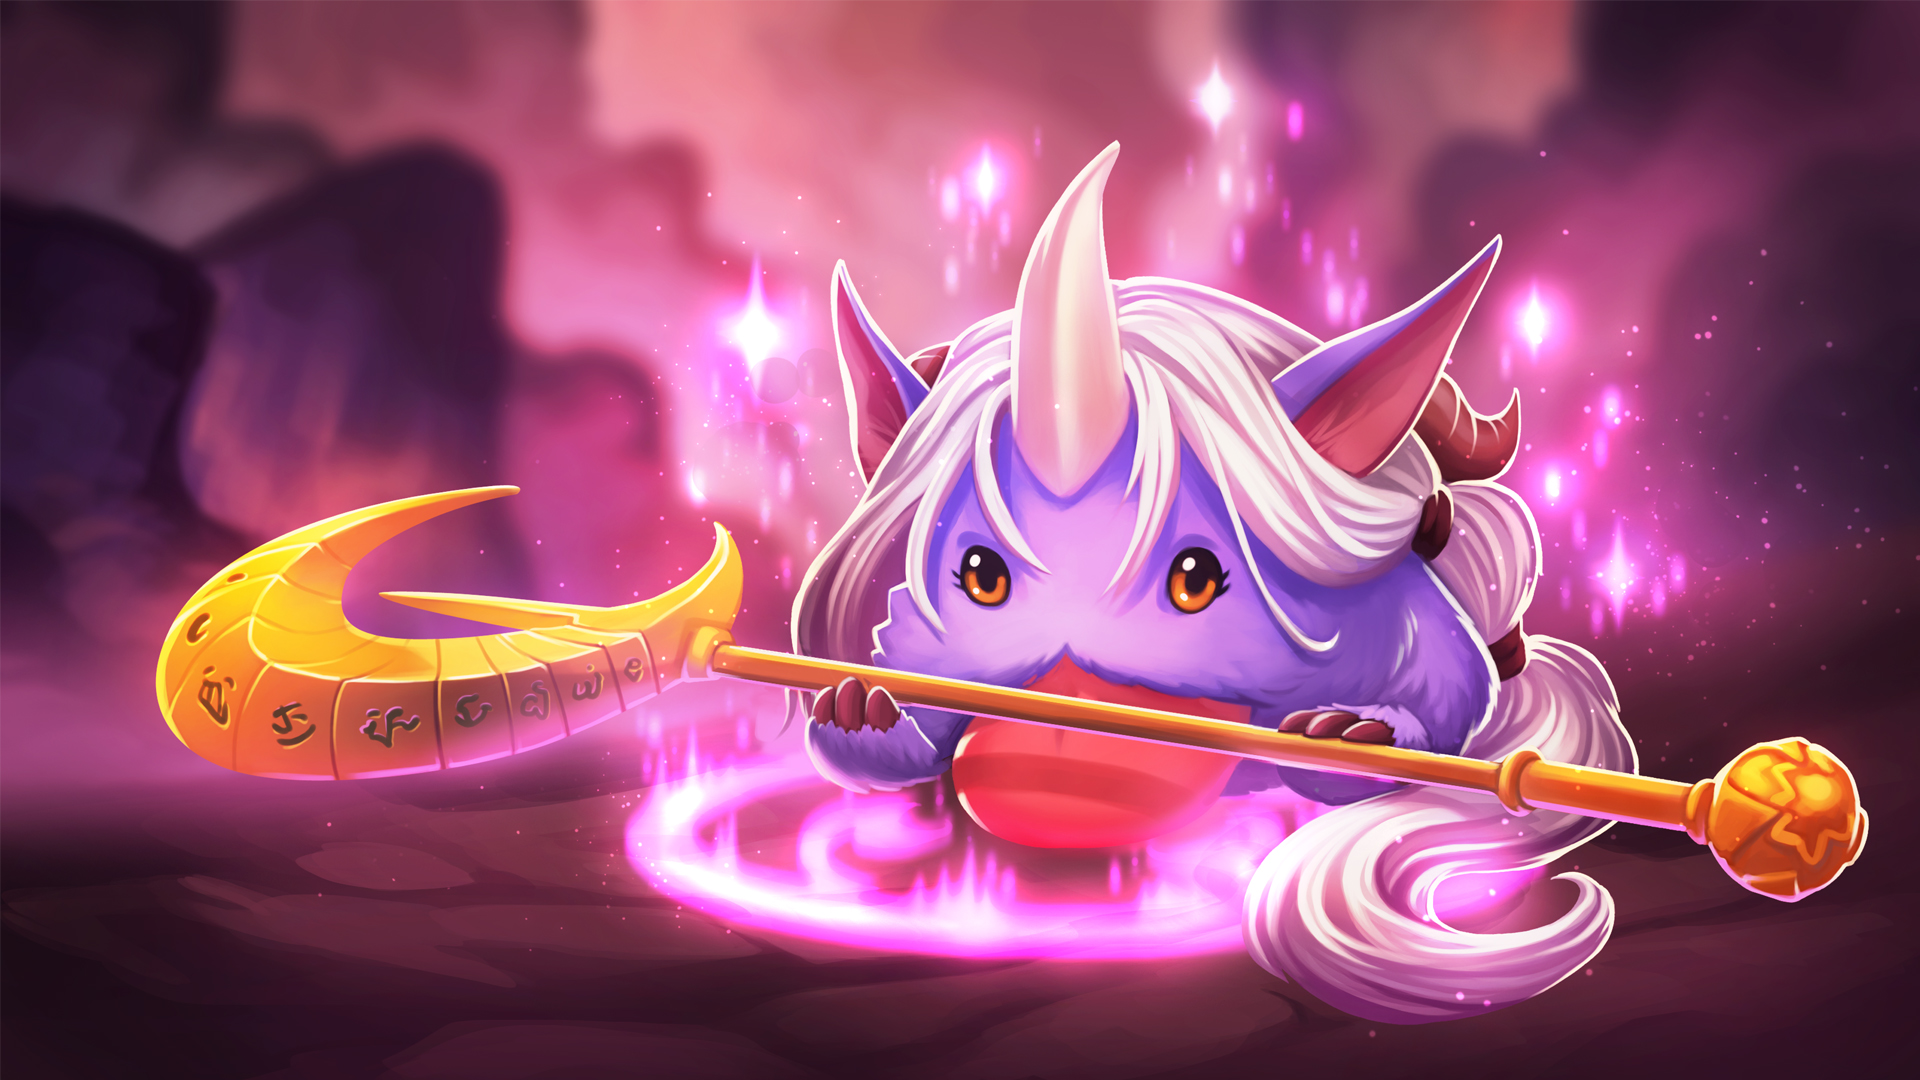 Bild - Soraka Poro.jpg | League of Legends Wiki | FANDOM ...